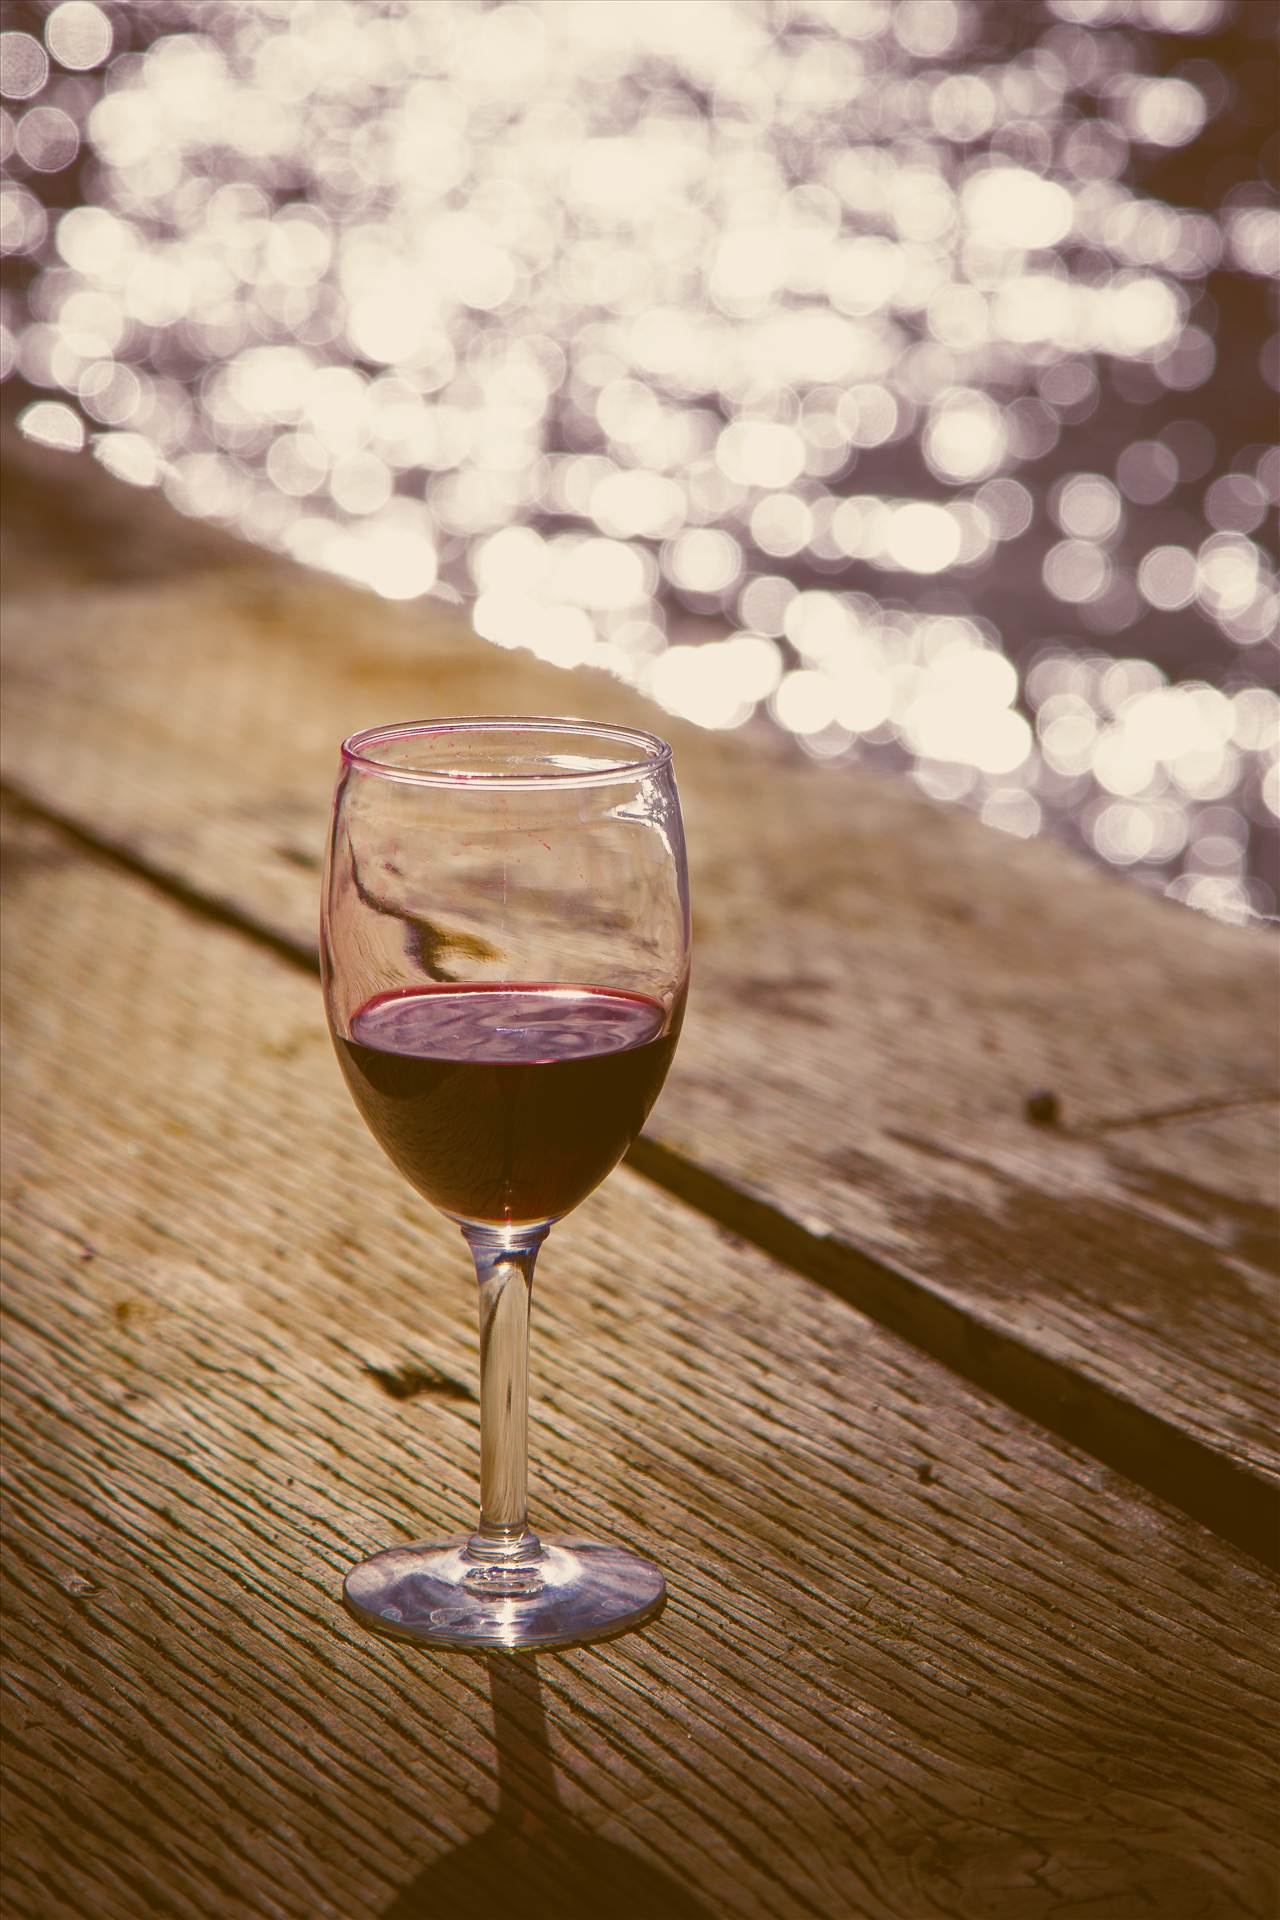 Sunset on the Bay - A glass of wine as the sun sets on Puget Sound, Seattle by D Scott Smith